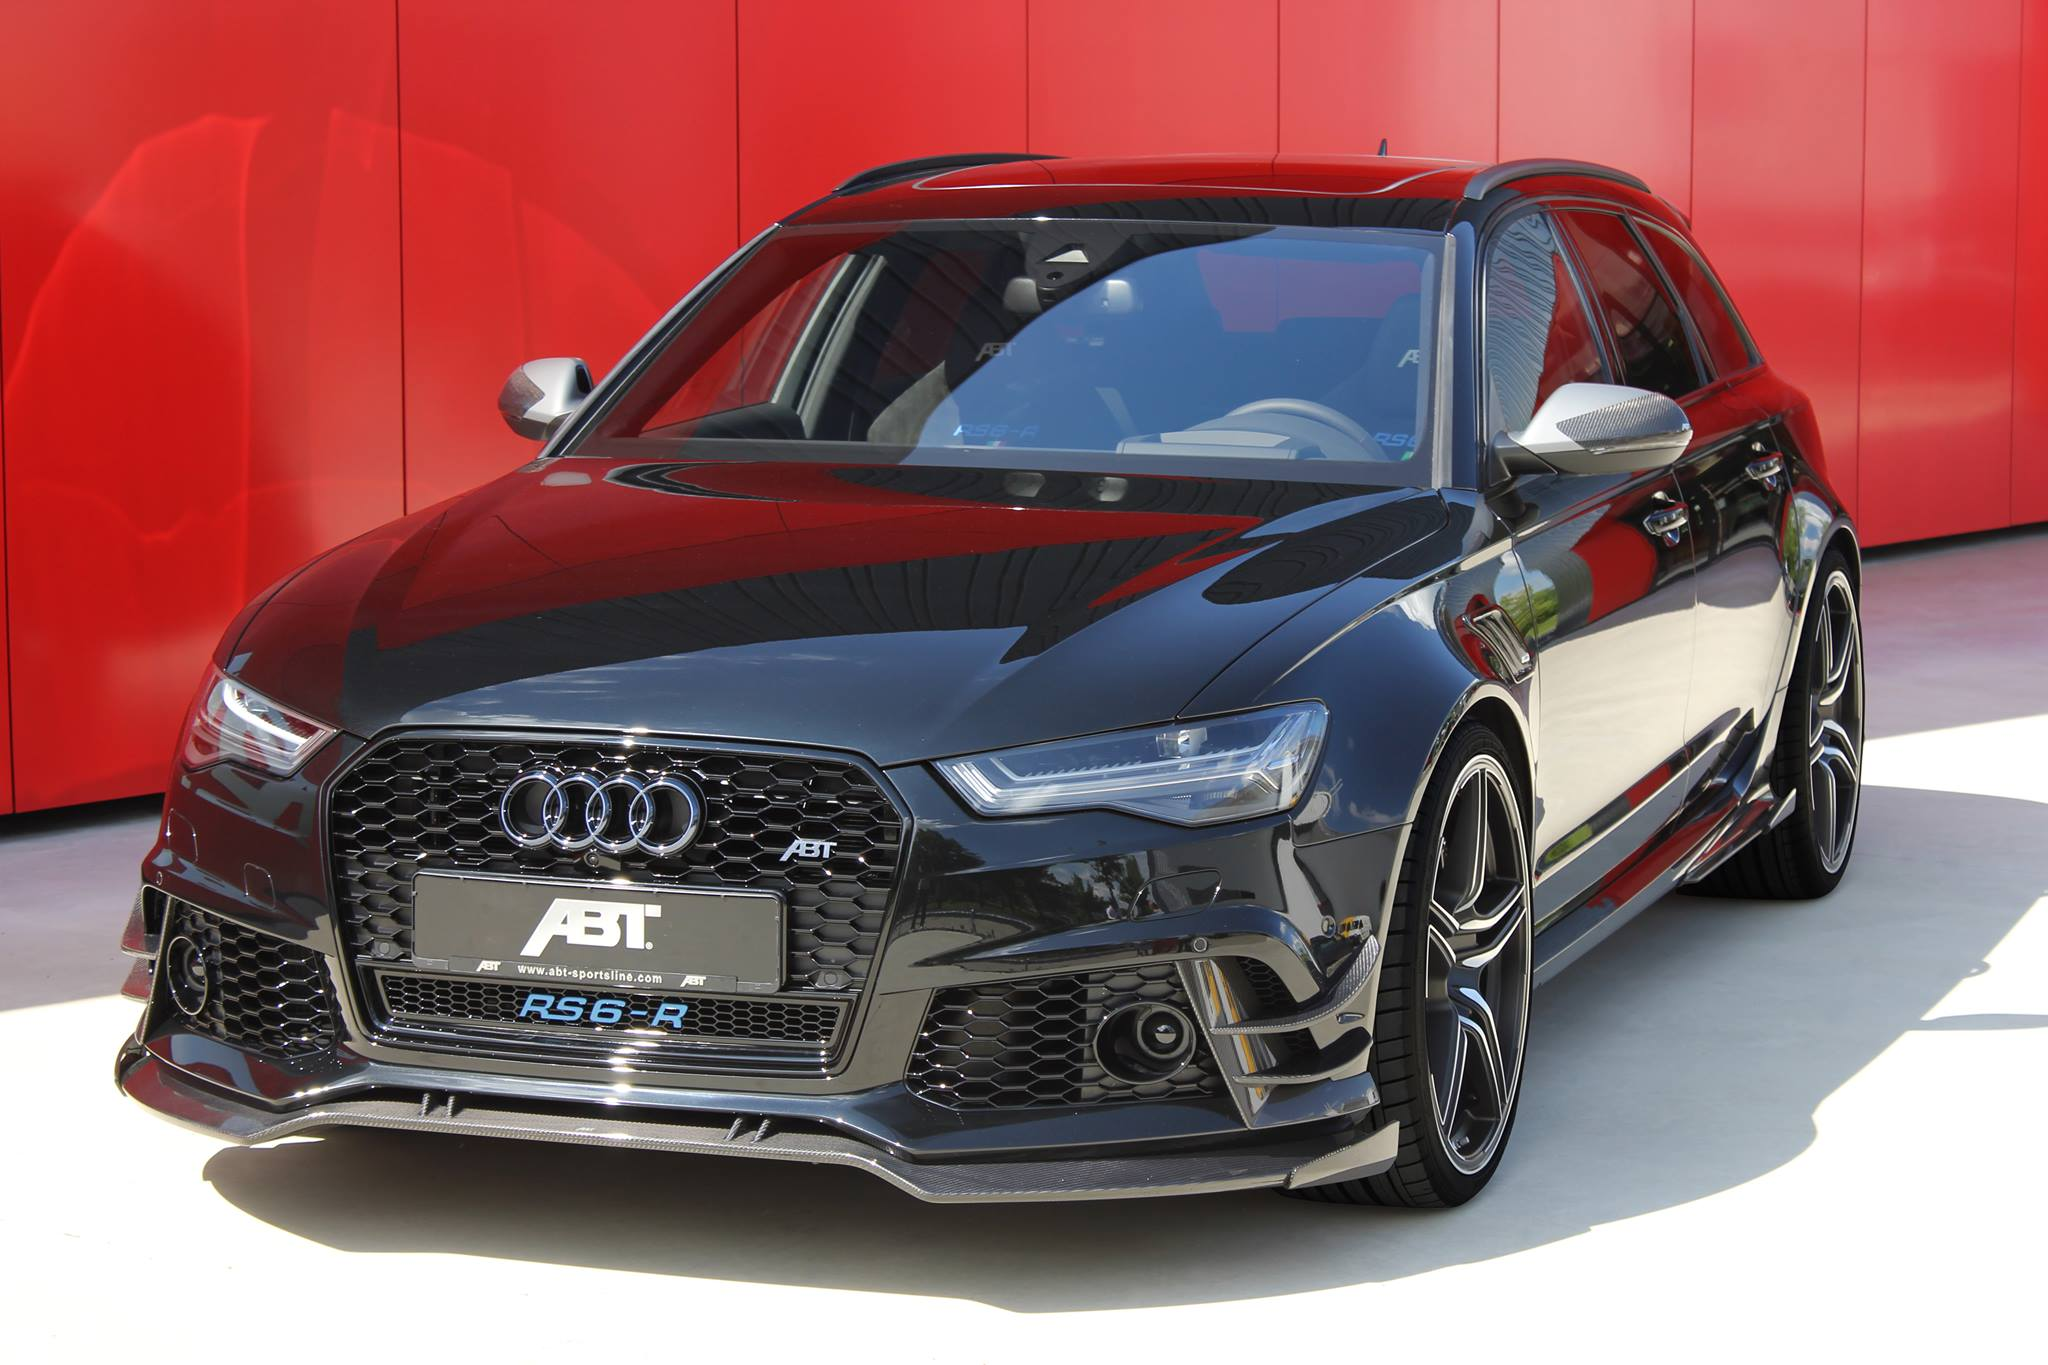 Audi Rs3 Wallpaper Hd Abt Rs6 R Edizione Italiana Is Another 730 Hp Audi